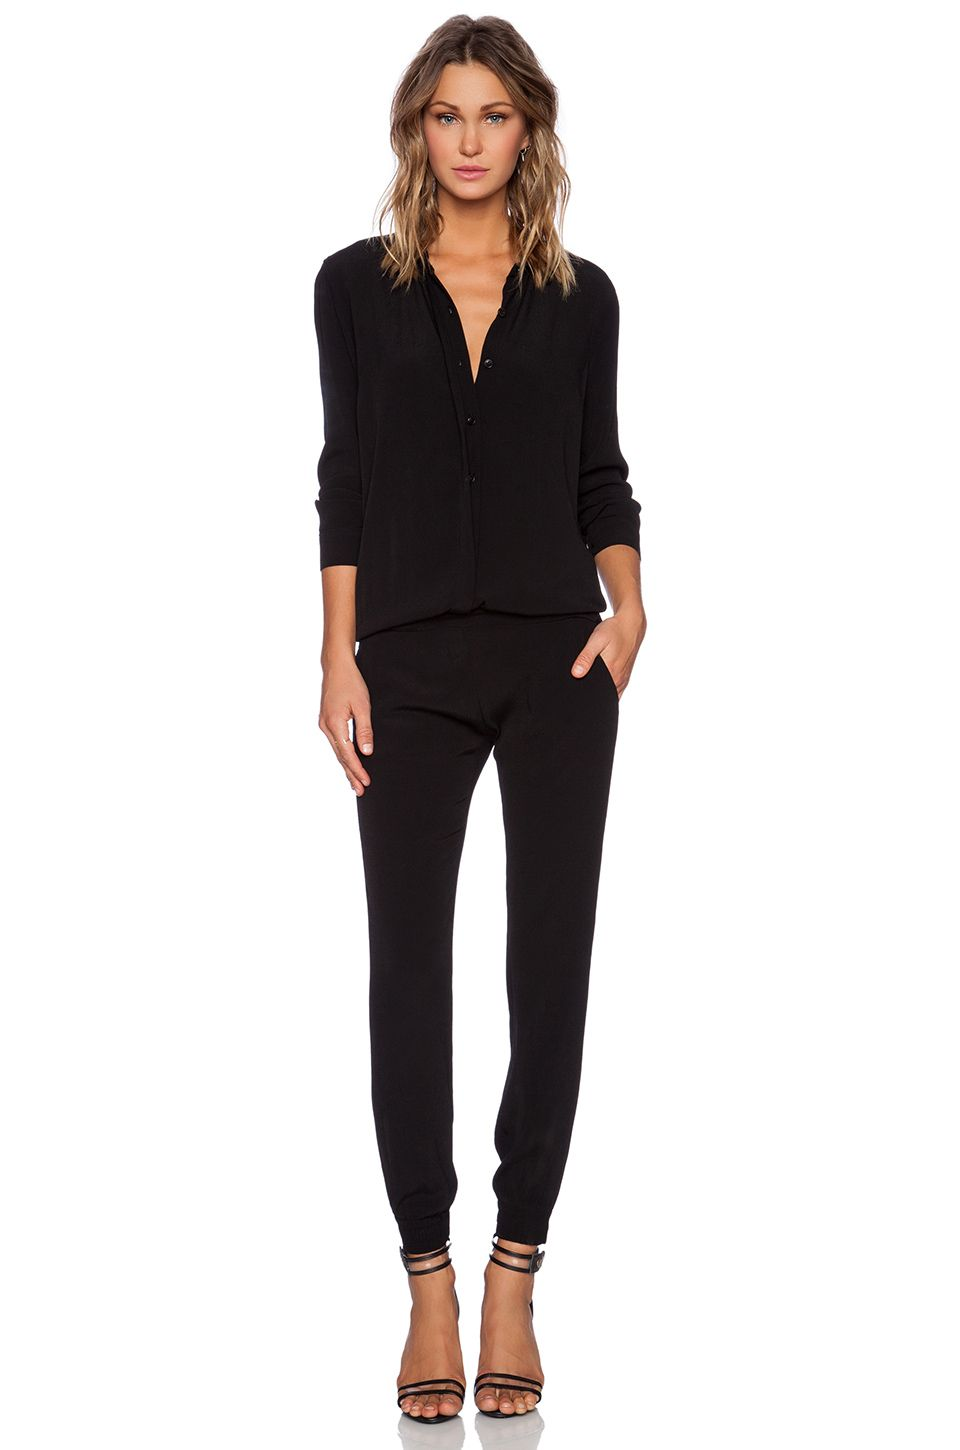 1e11b2baa0d MONROW MONROW CREPE LONG SLEEVE JUMPSUIT IN BLACK. .  monrow  cloth  dress   top  shirt